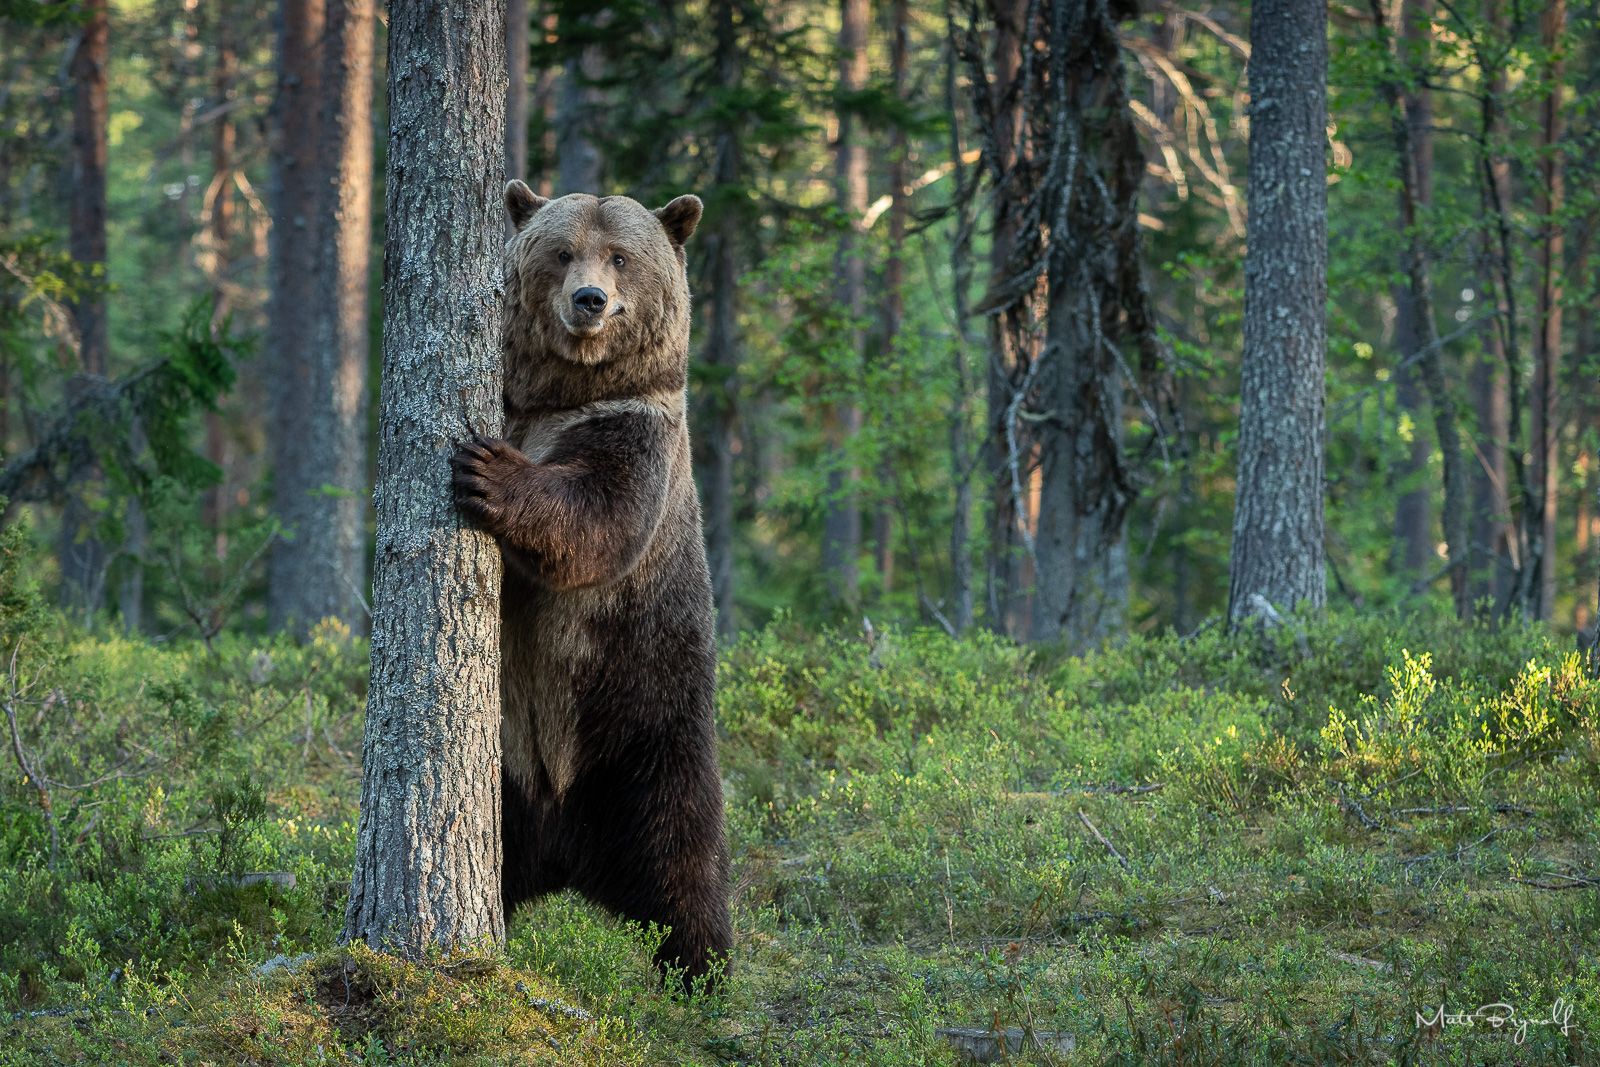 Curious bear trying to figuare out what our hides are